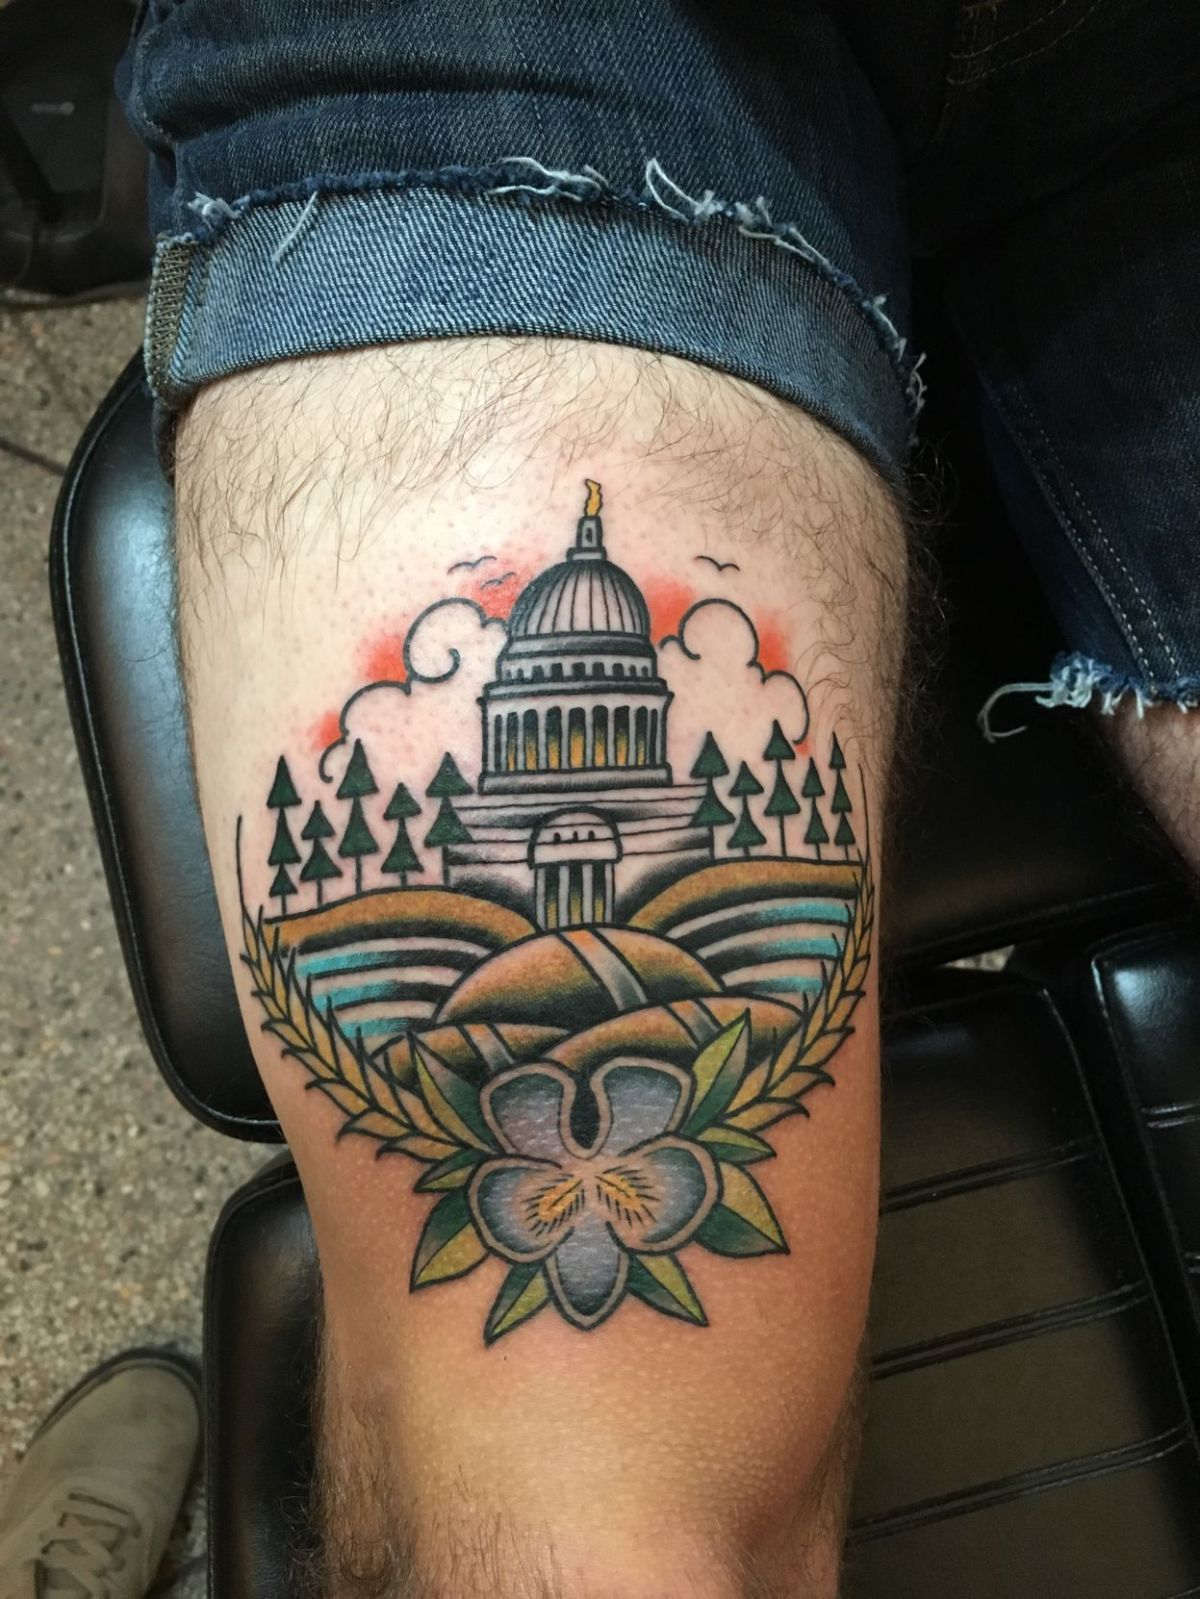 Tattoo Part 2 Even More Wisconsin Tattoos Submitted By Ideas And Designs